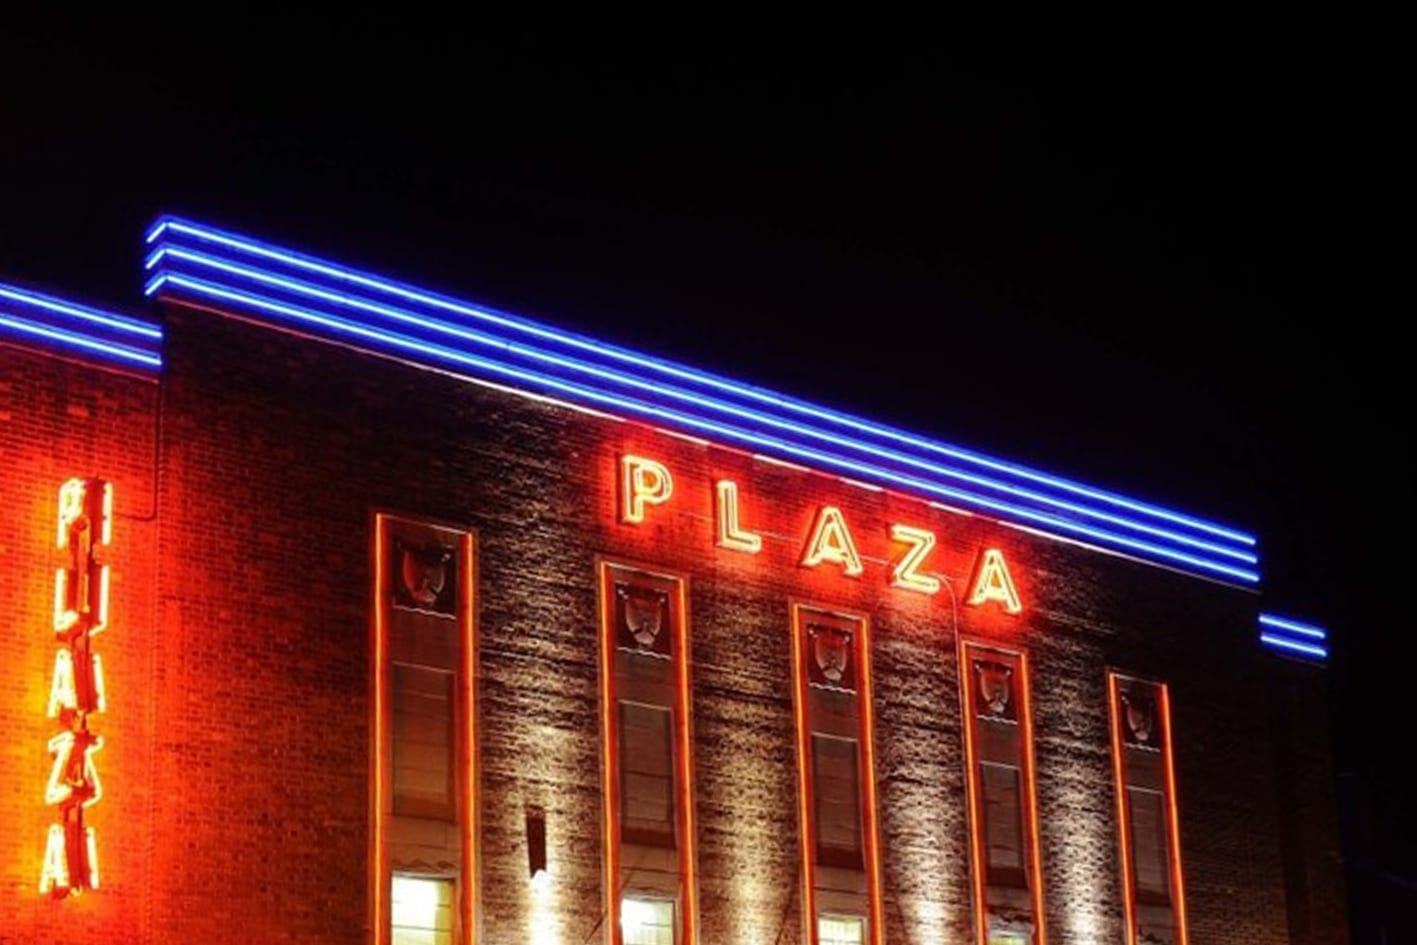 Plaza Community Cinema Liverpool